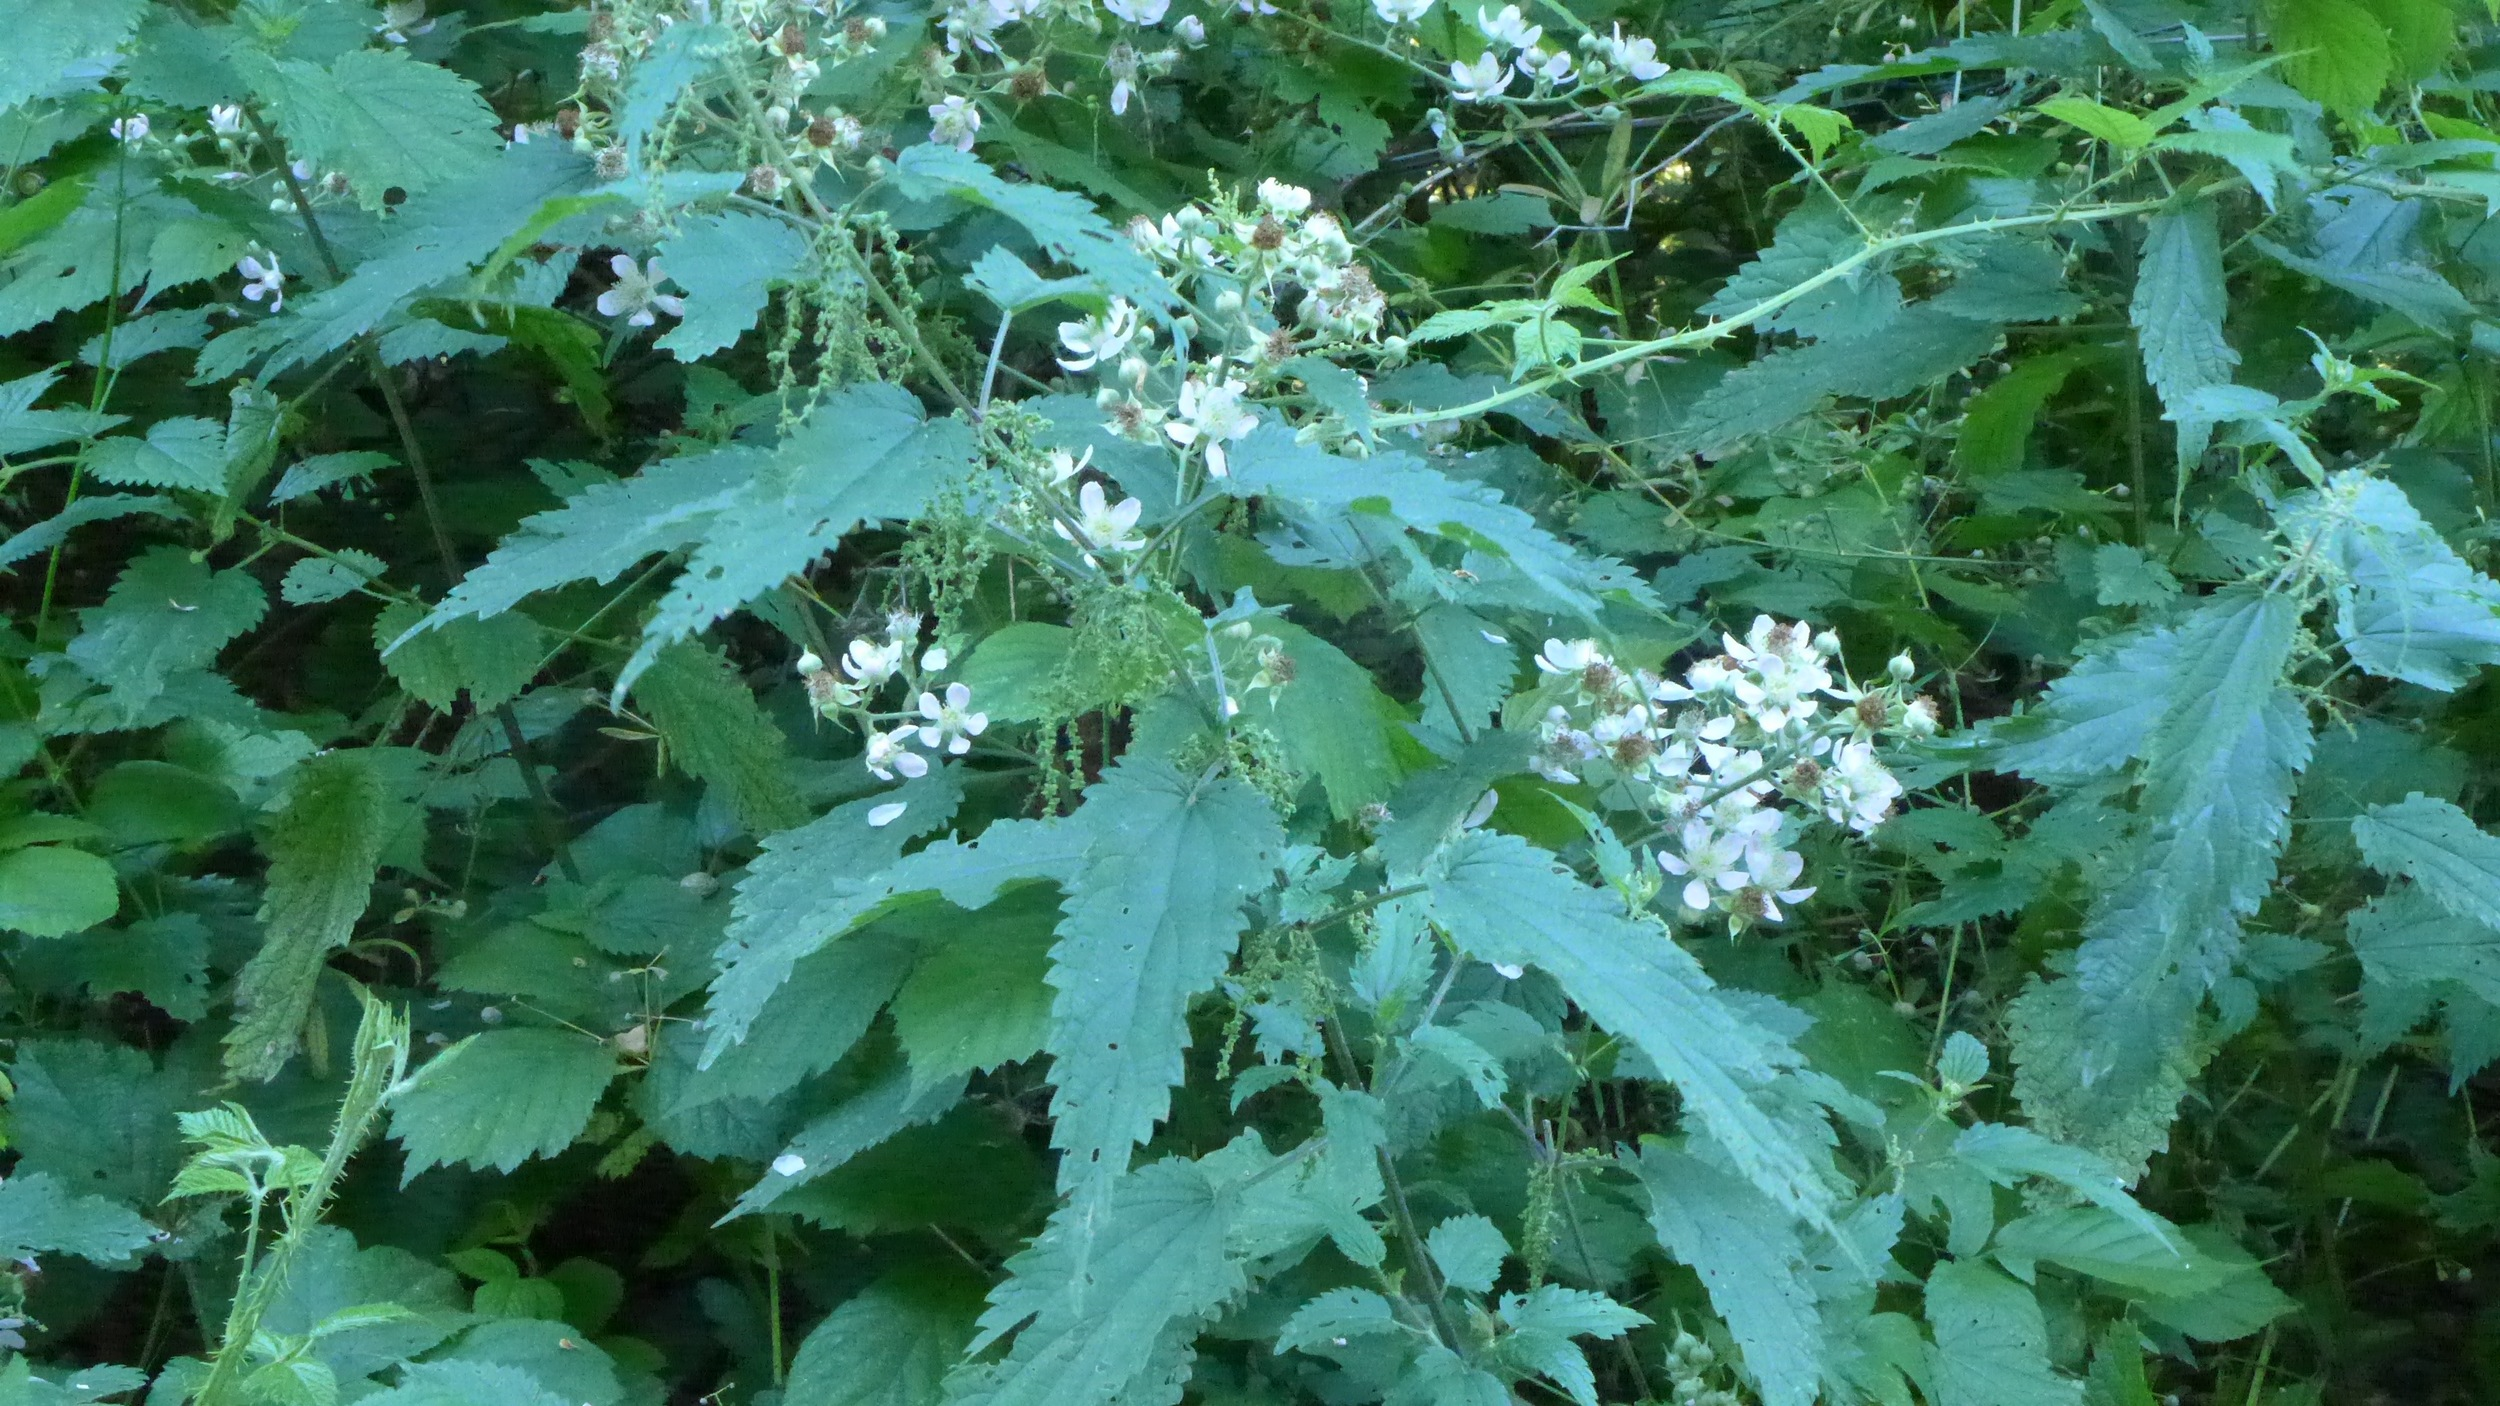 Wild nettles and blackberry flowers on my forest walk